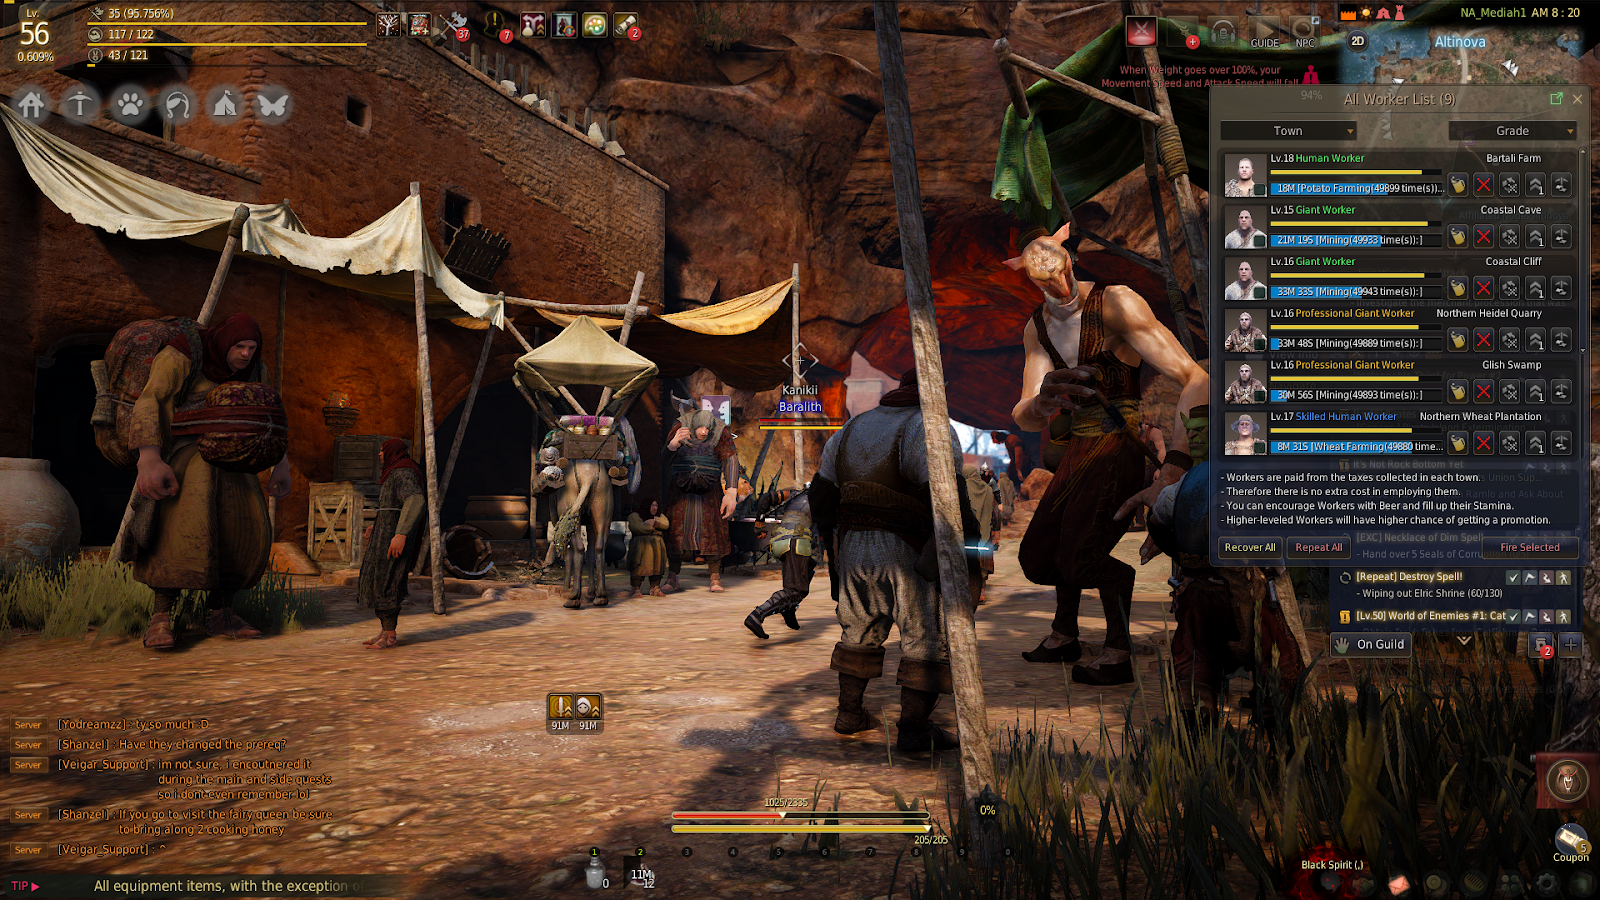 Black Desert Online: How to Use Nodes and Workers   Bananatic